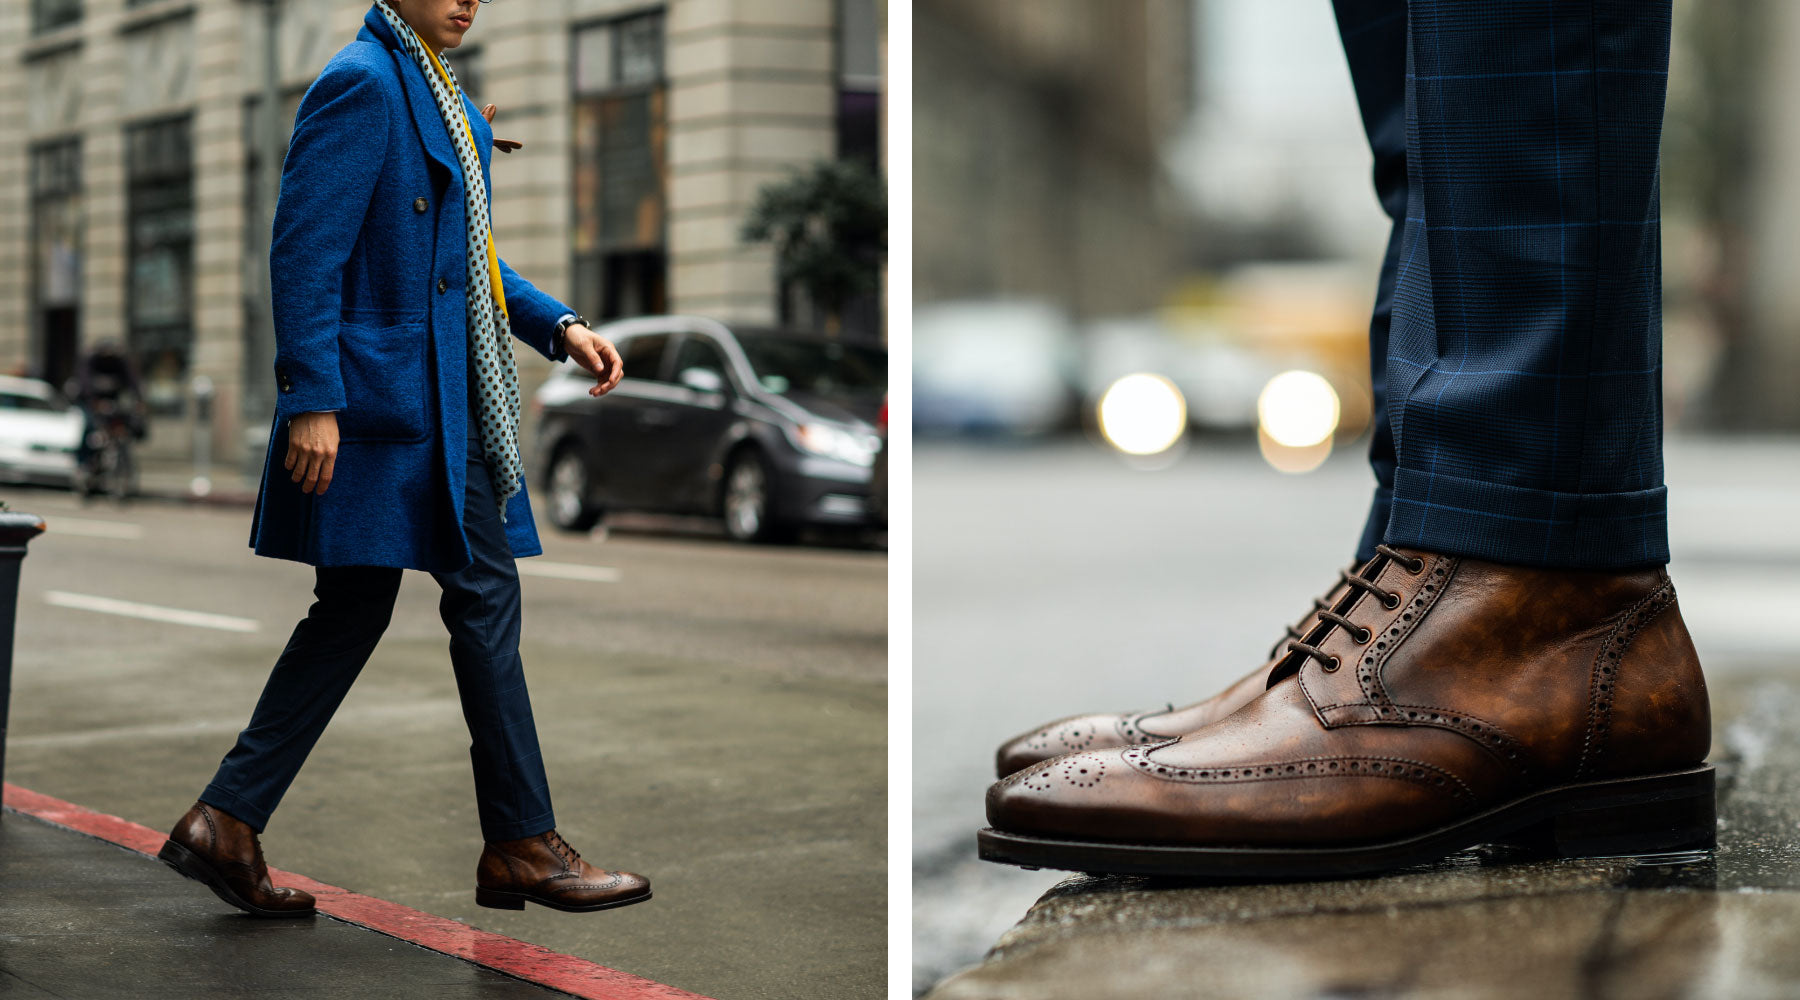 The Best Men's Dress Boots: The Wingtip